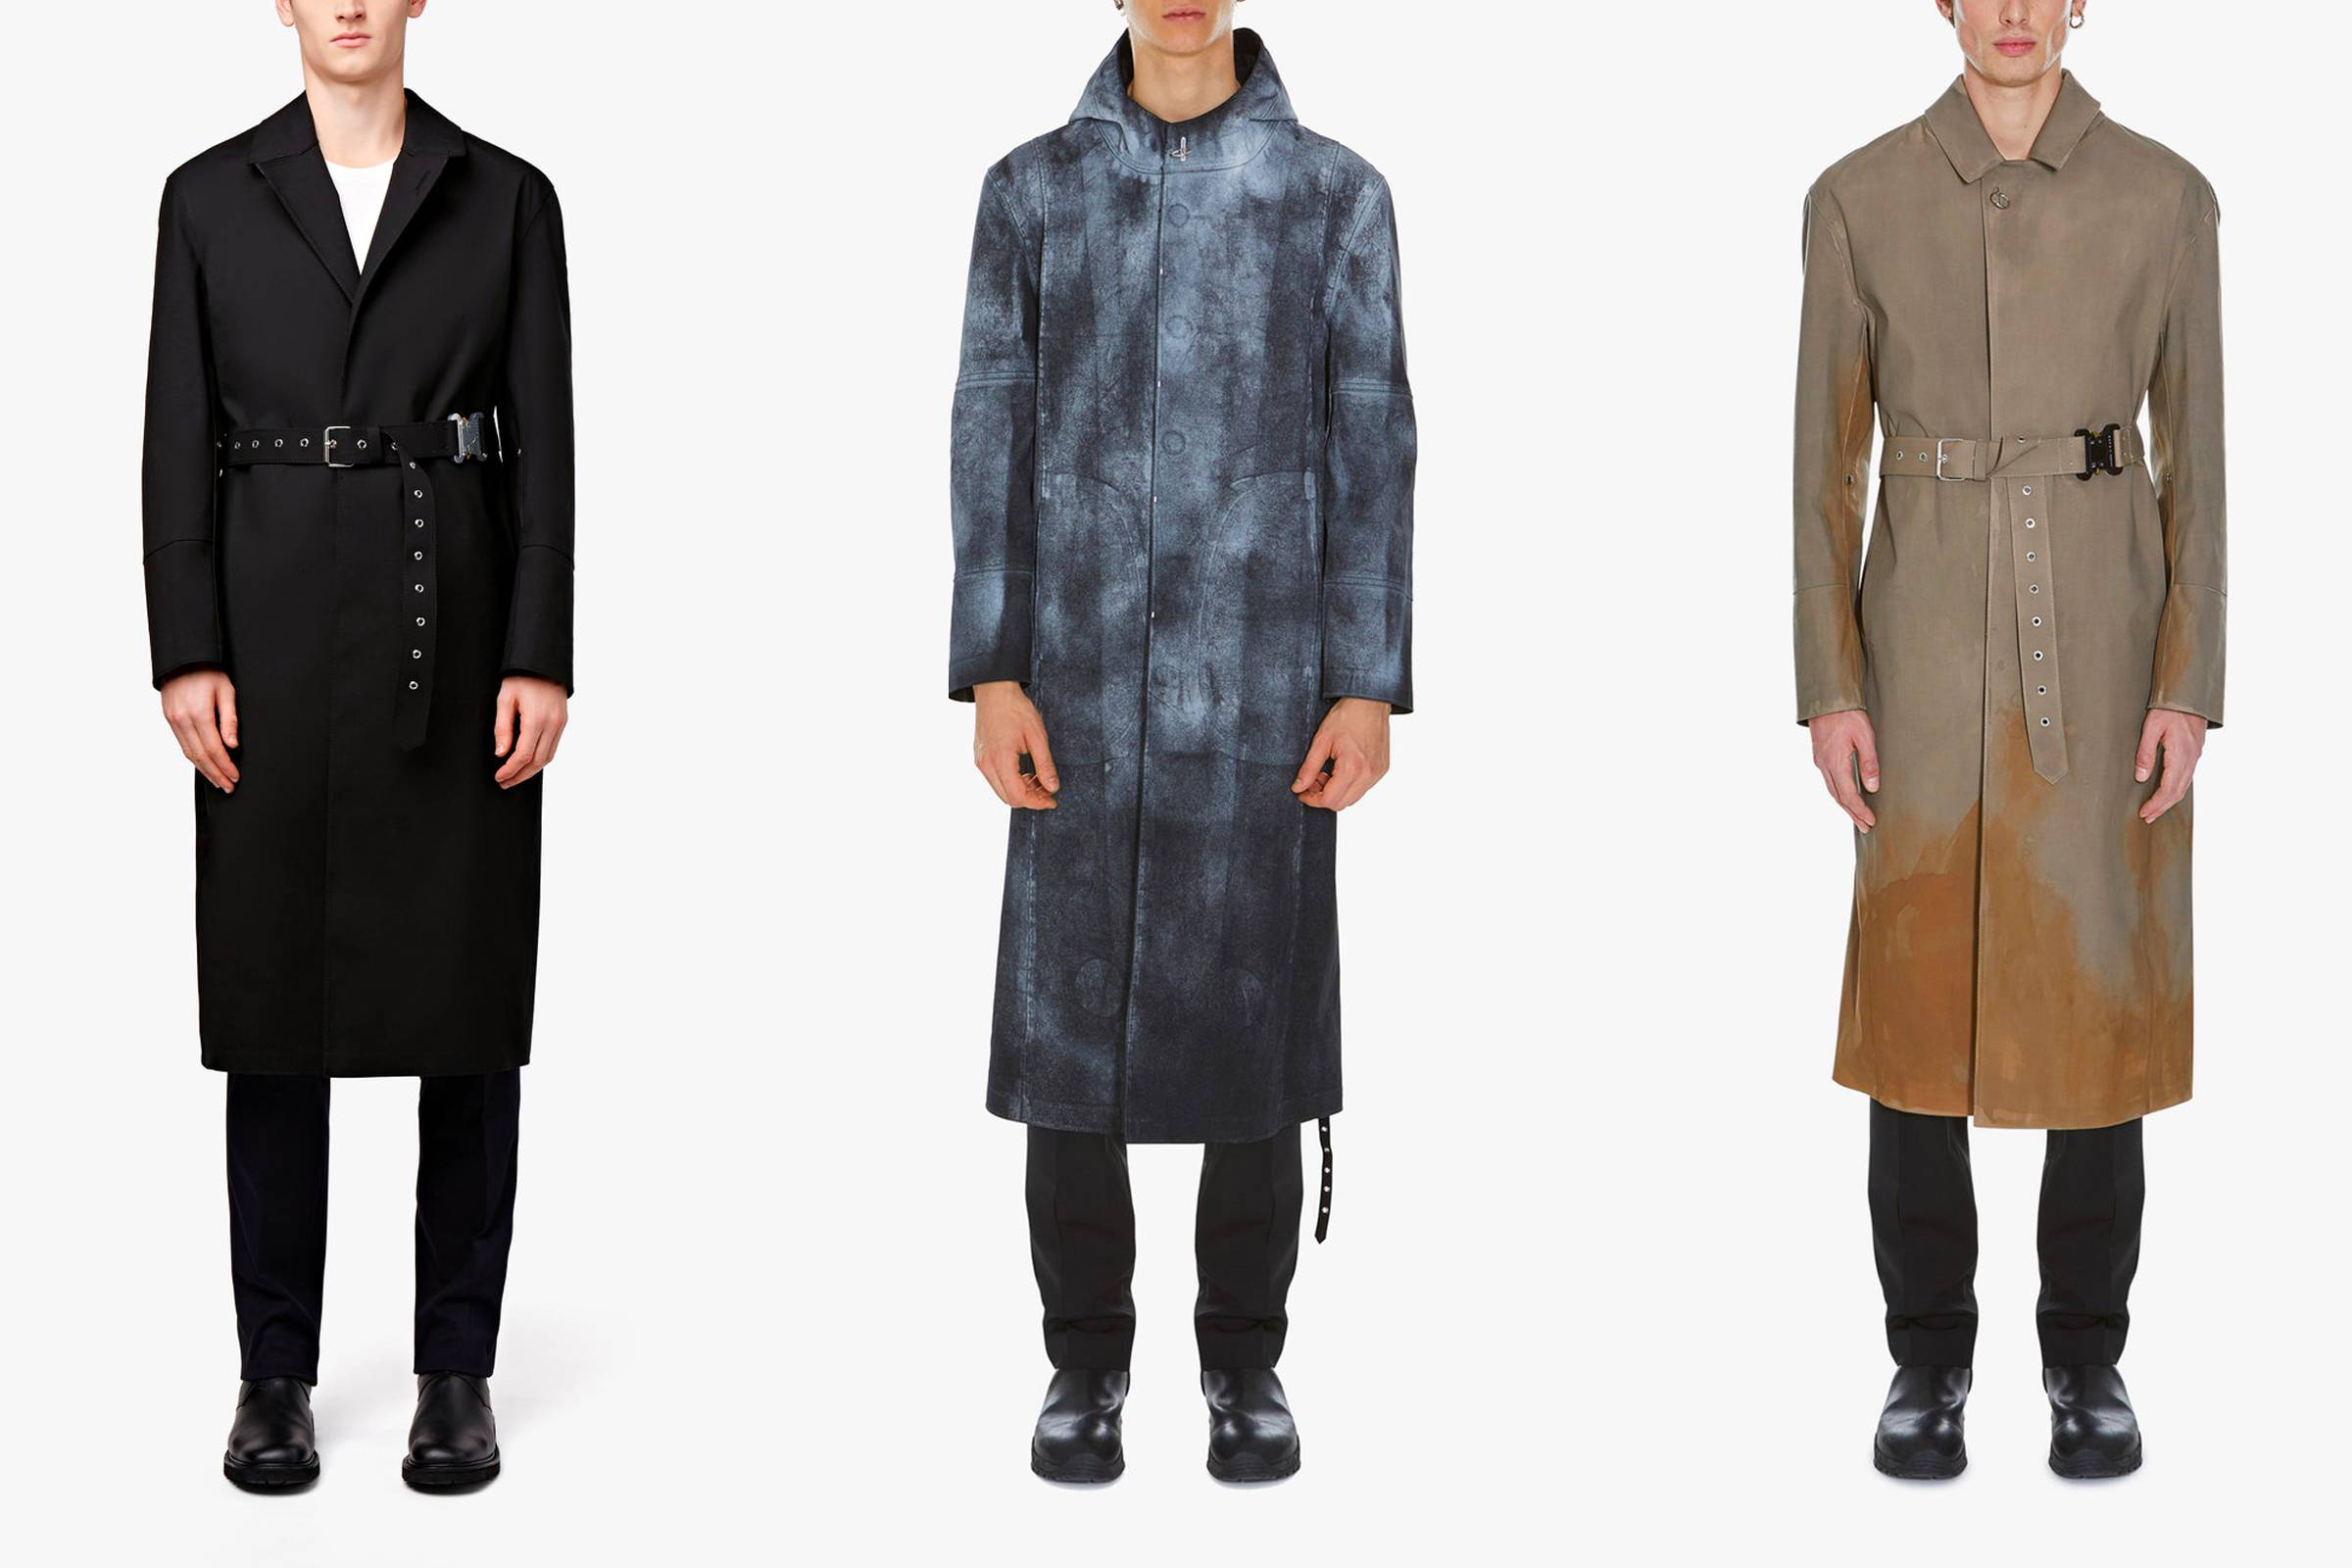 Three mackintosh coats from Alyx and Mackintosh's Spring/Summer 2018 collaboration collection